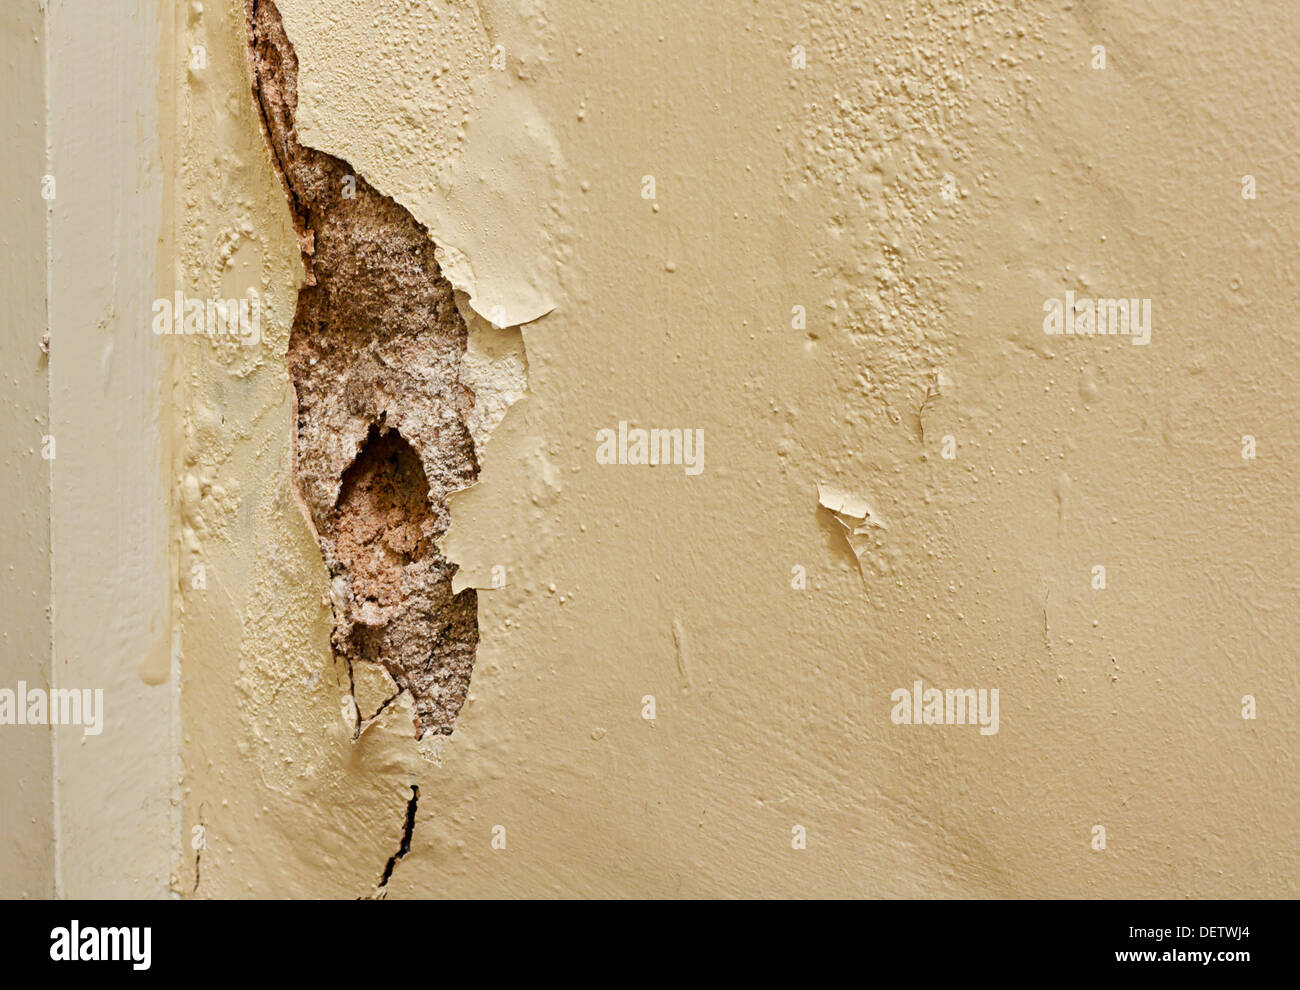 Plaster Wall Stock Photos & Plaster Wall Stock Images - Alamy